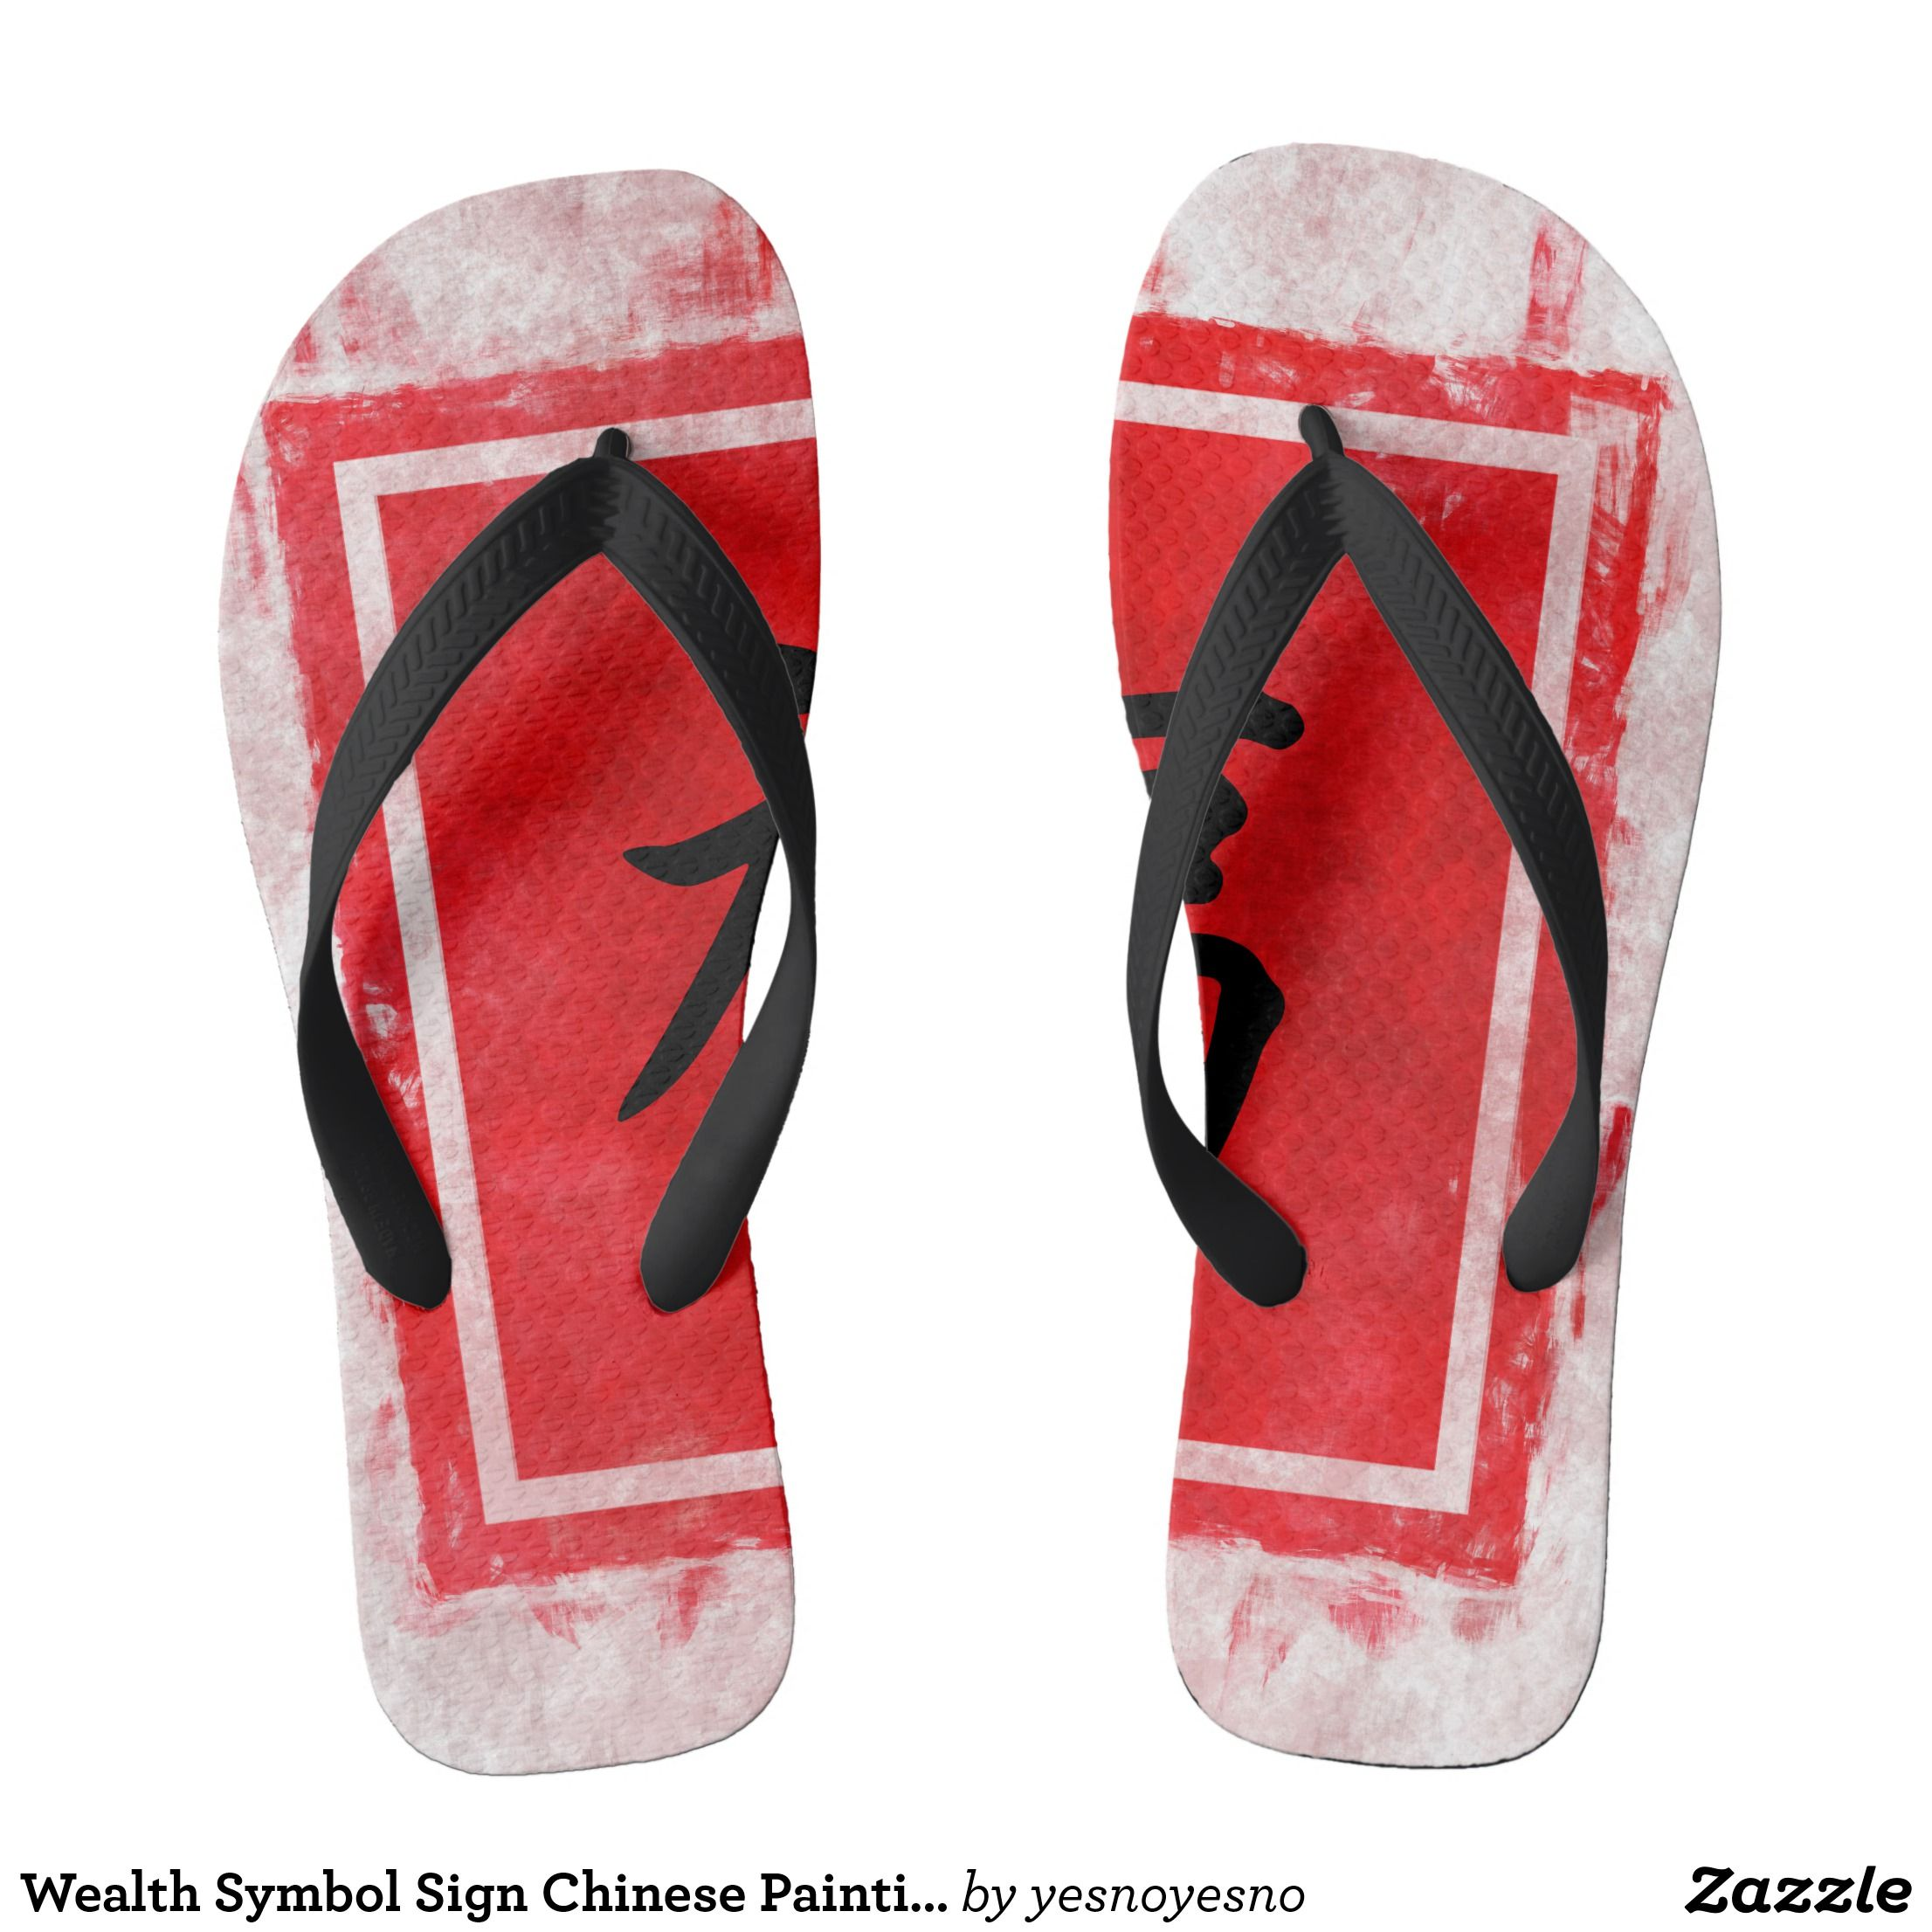 Wealth symbol sign chinese painting in red black flip flops wealth symbol sign chinese painting in red black flip flops durable thong style hawaiian beach sandals by talented fashion graphic designers sandals buycottarizona Images